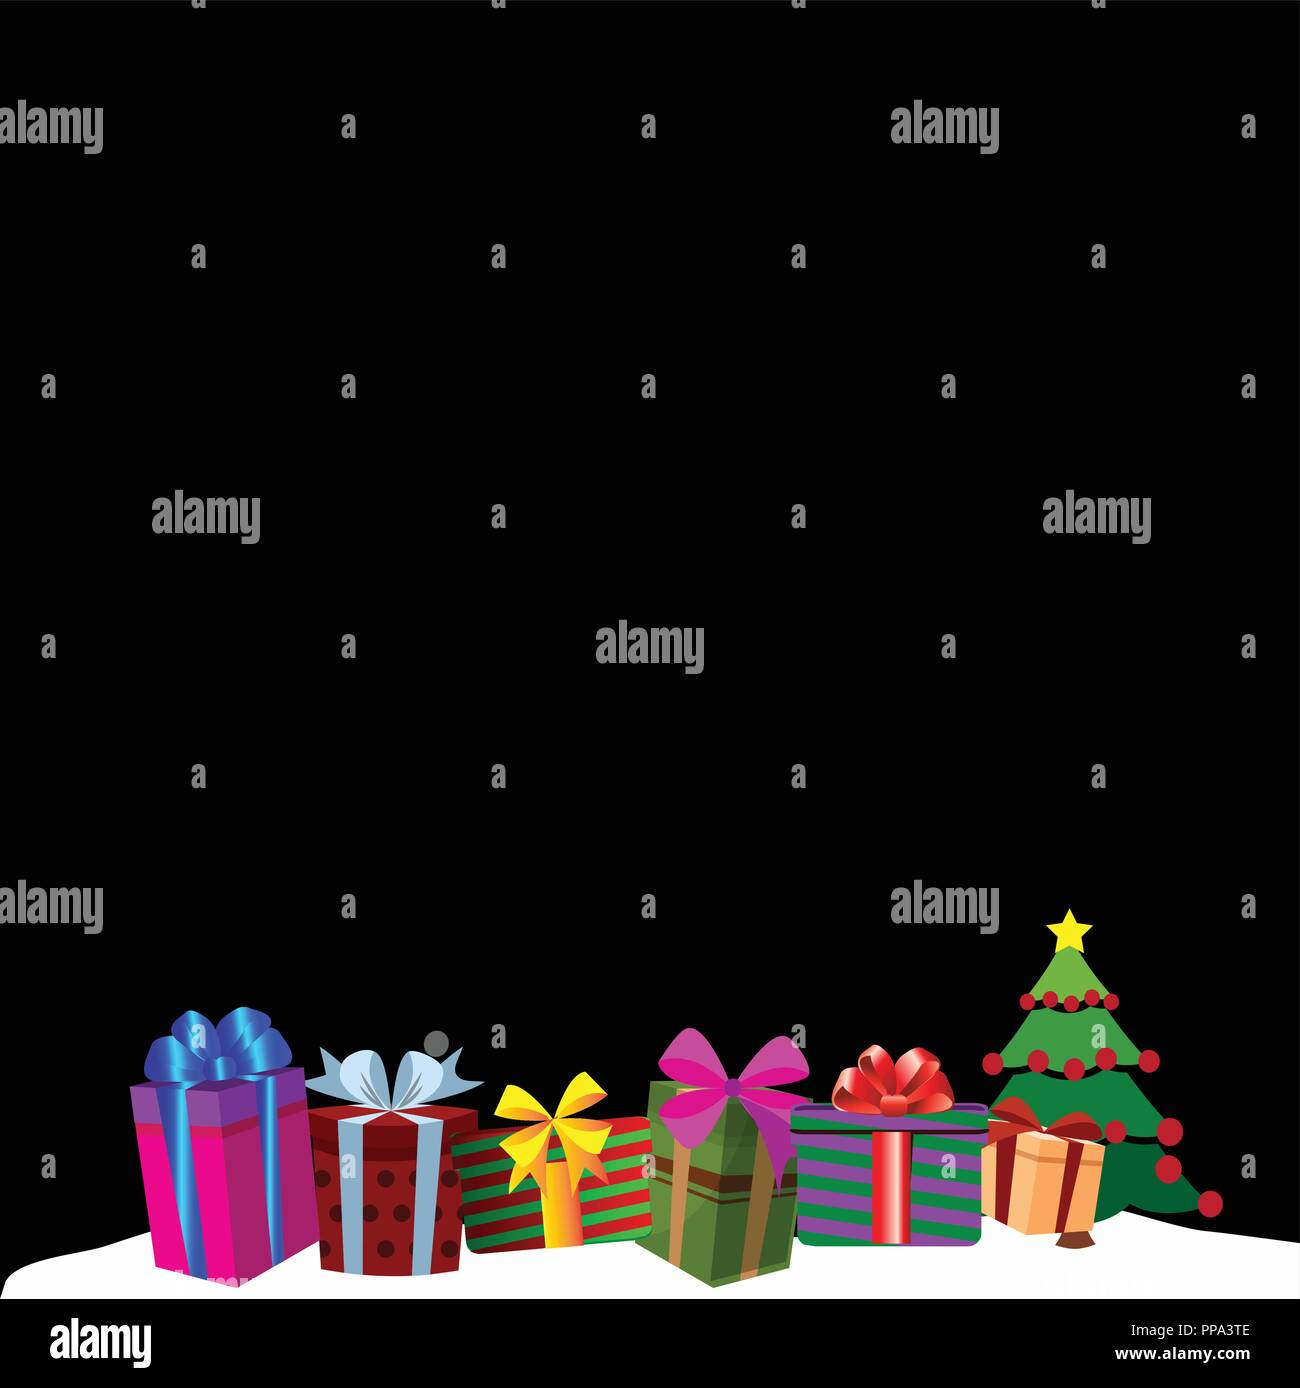 colourful gift boxes on white snow drift christmas or new year border frame background vector illustration of presents decorated by ribbons and bows